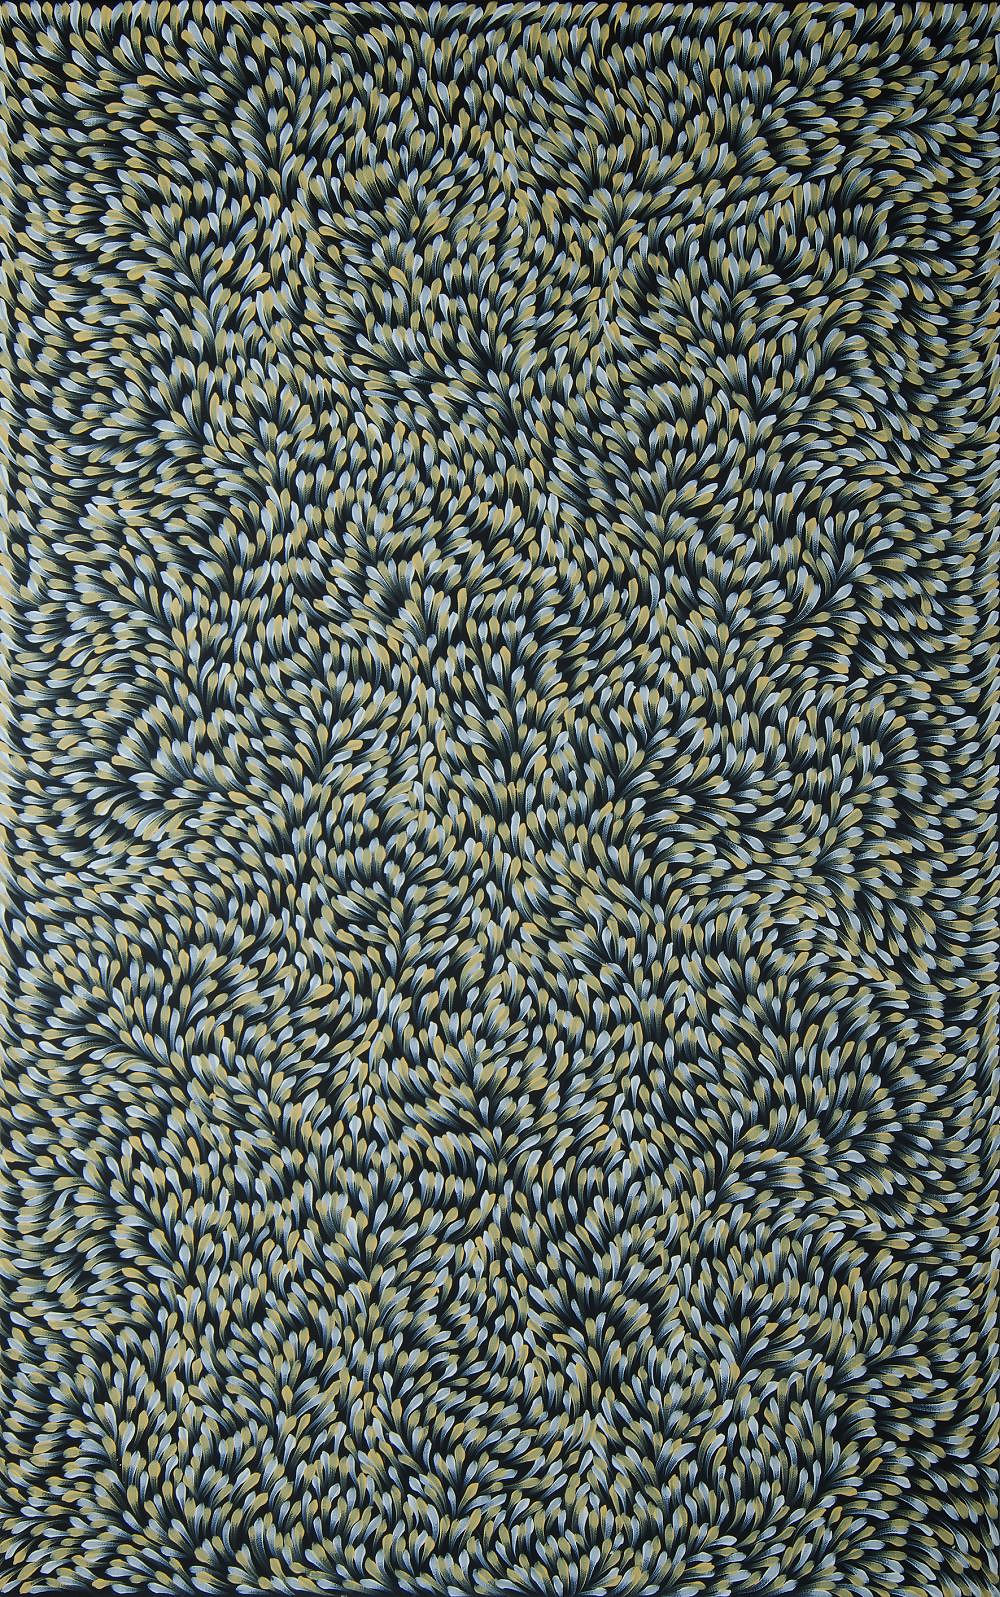 'PETYARRE, Gloria (born c.1938) Bush Medicine Leaves, 2012. Stamp verso for Mimi Art Gallery, cat 2876. Certificate of authenticity available Acrylic on Linen'